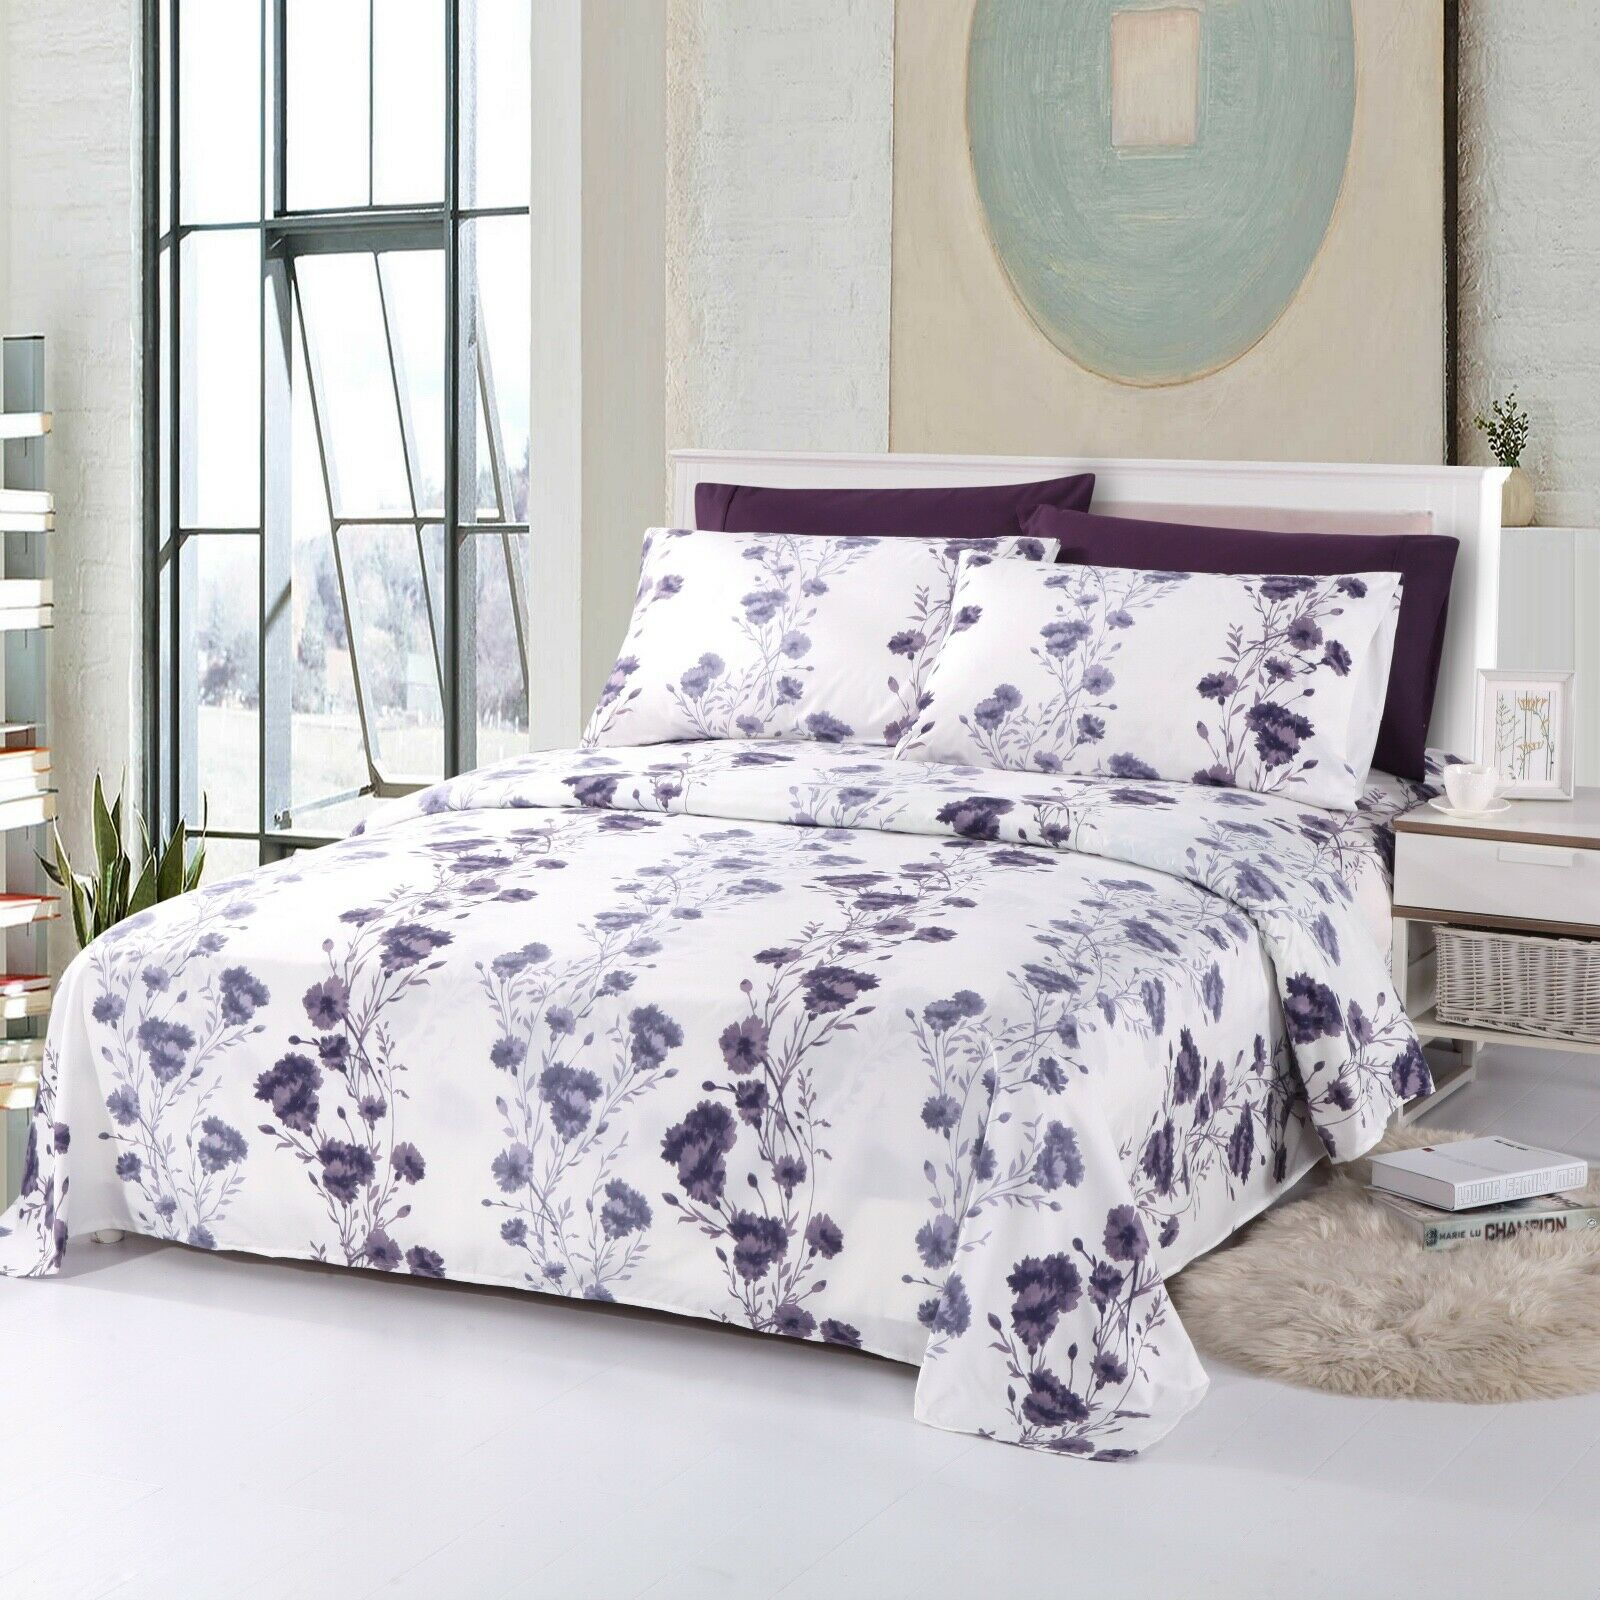 Arora Collection Soft Microfiber 6-Piece Sheet Set Printed - Violet Purple